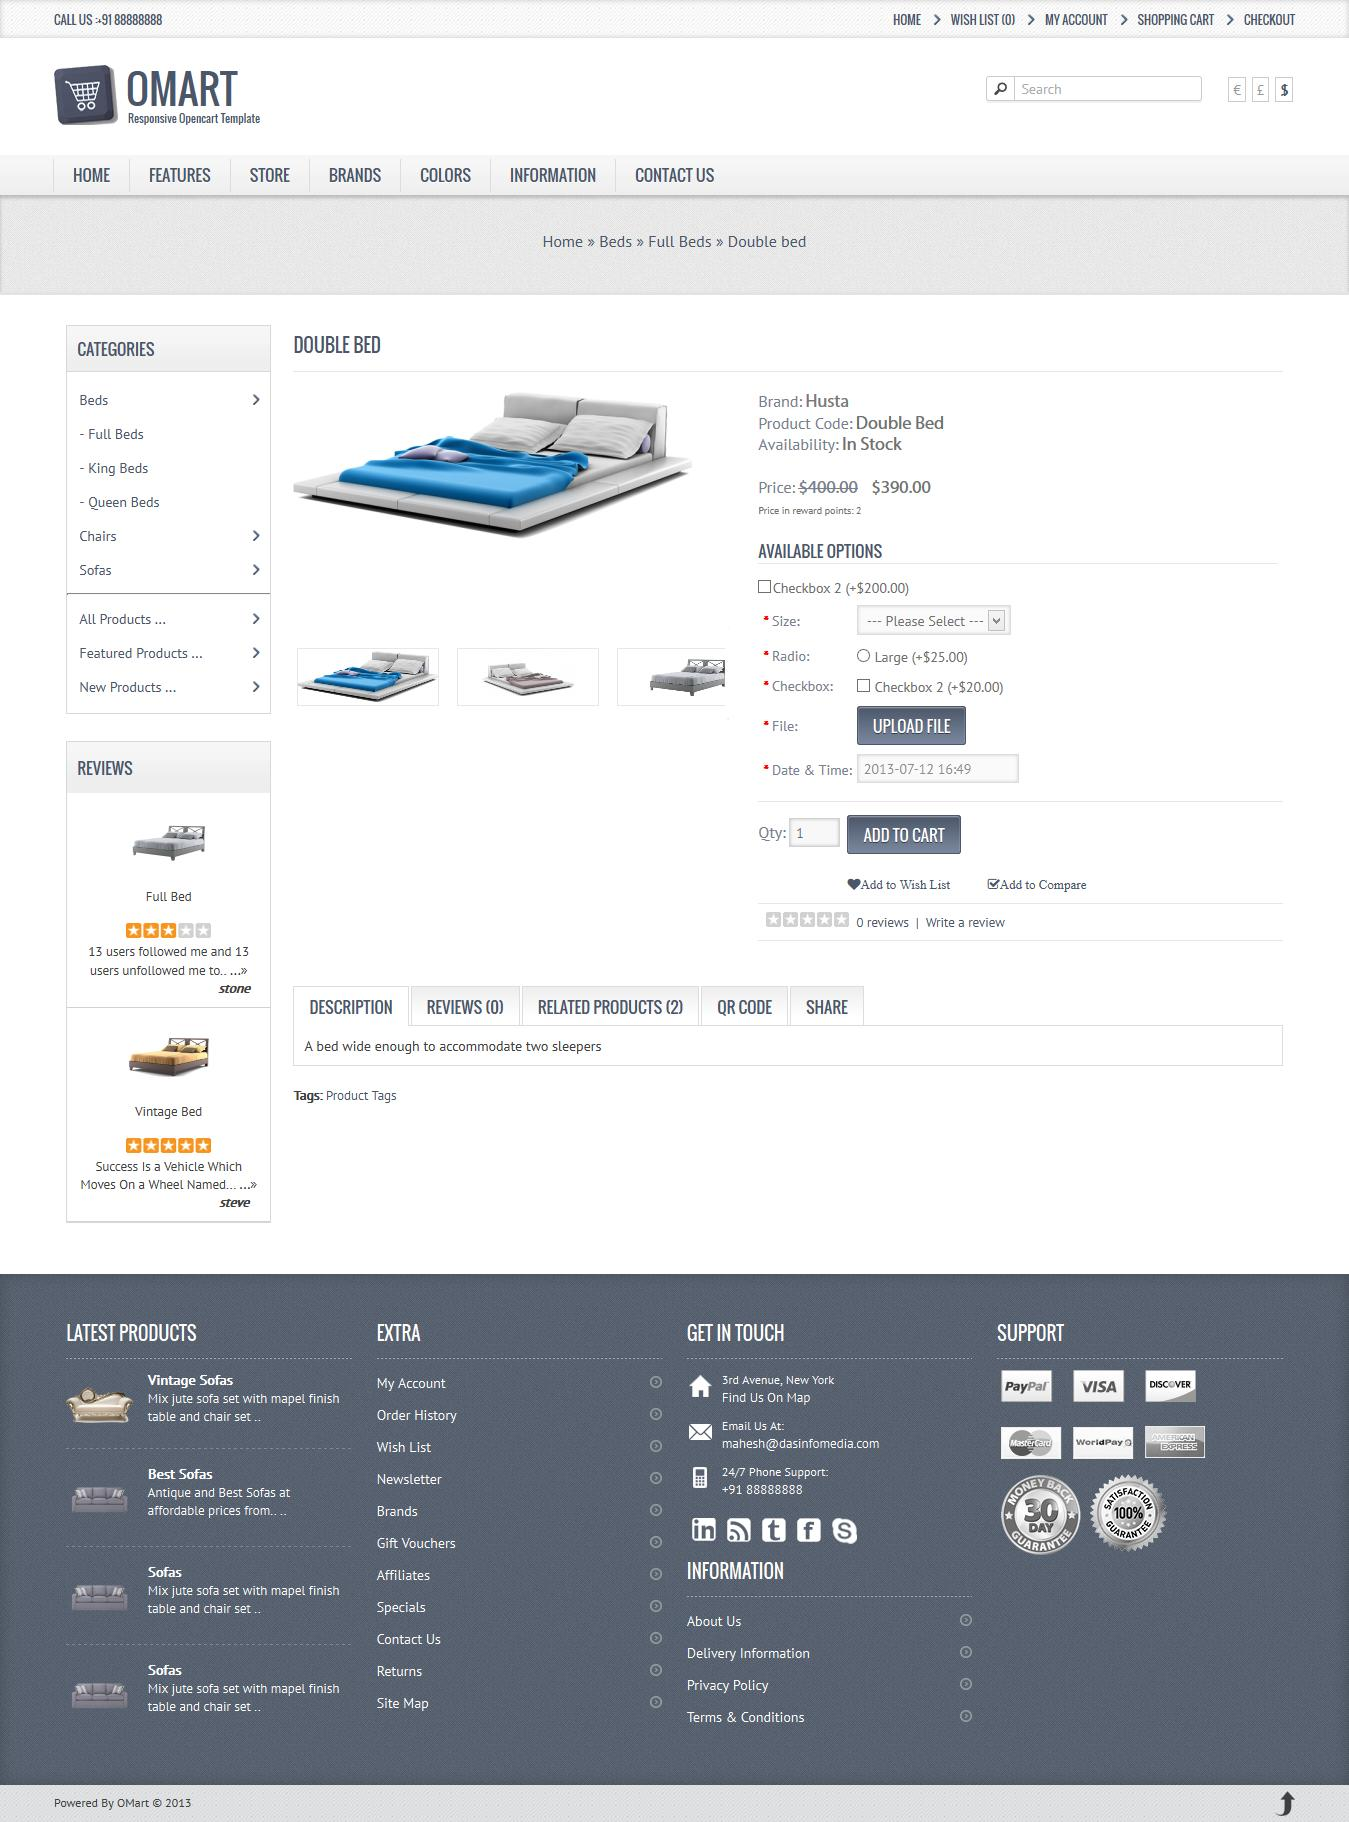 Complete Opencart eCommerce Site Setup by dasinfomedia - 45292